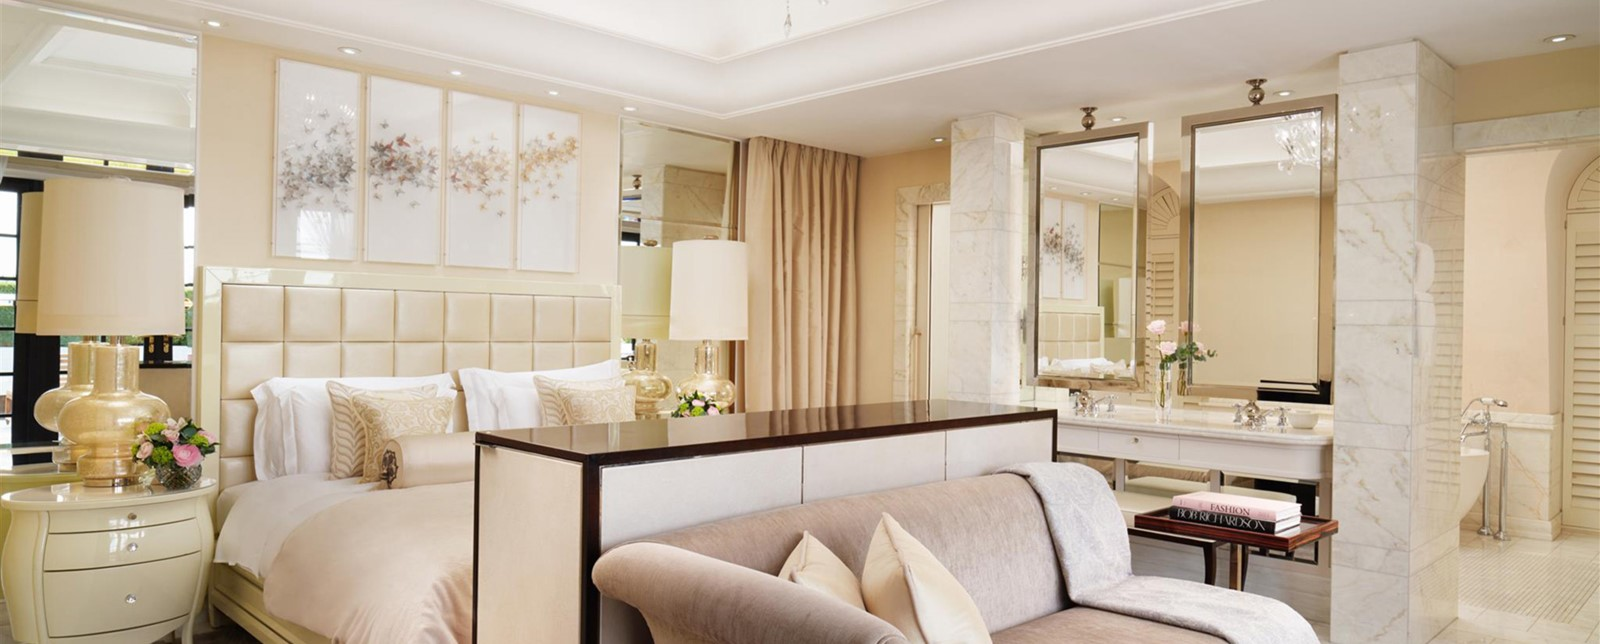 corinthia london hamilton penthouse bedroom